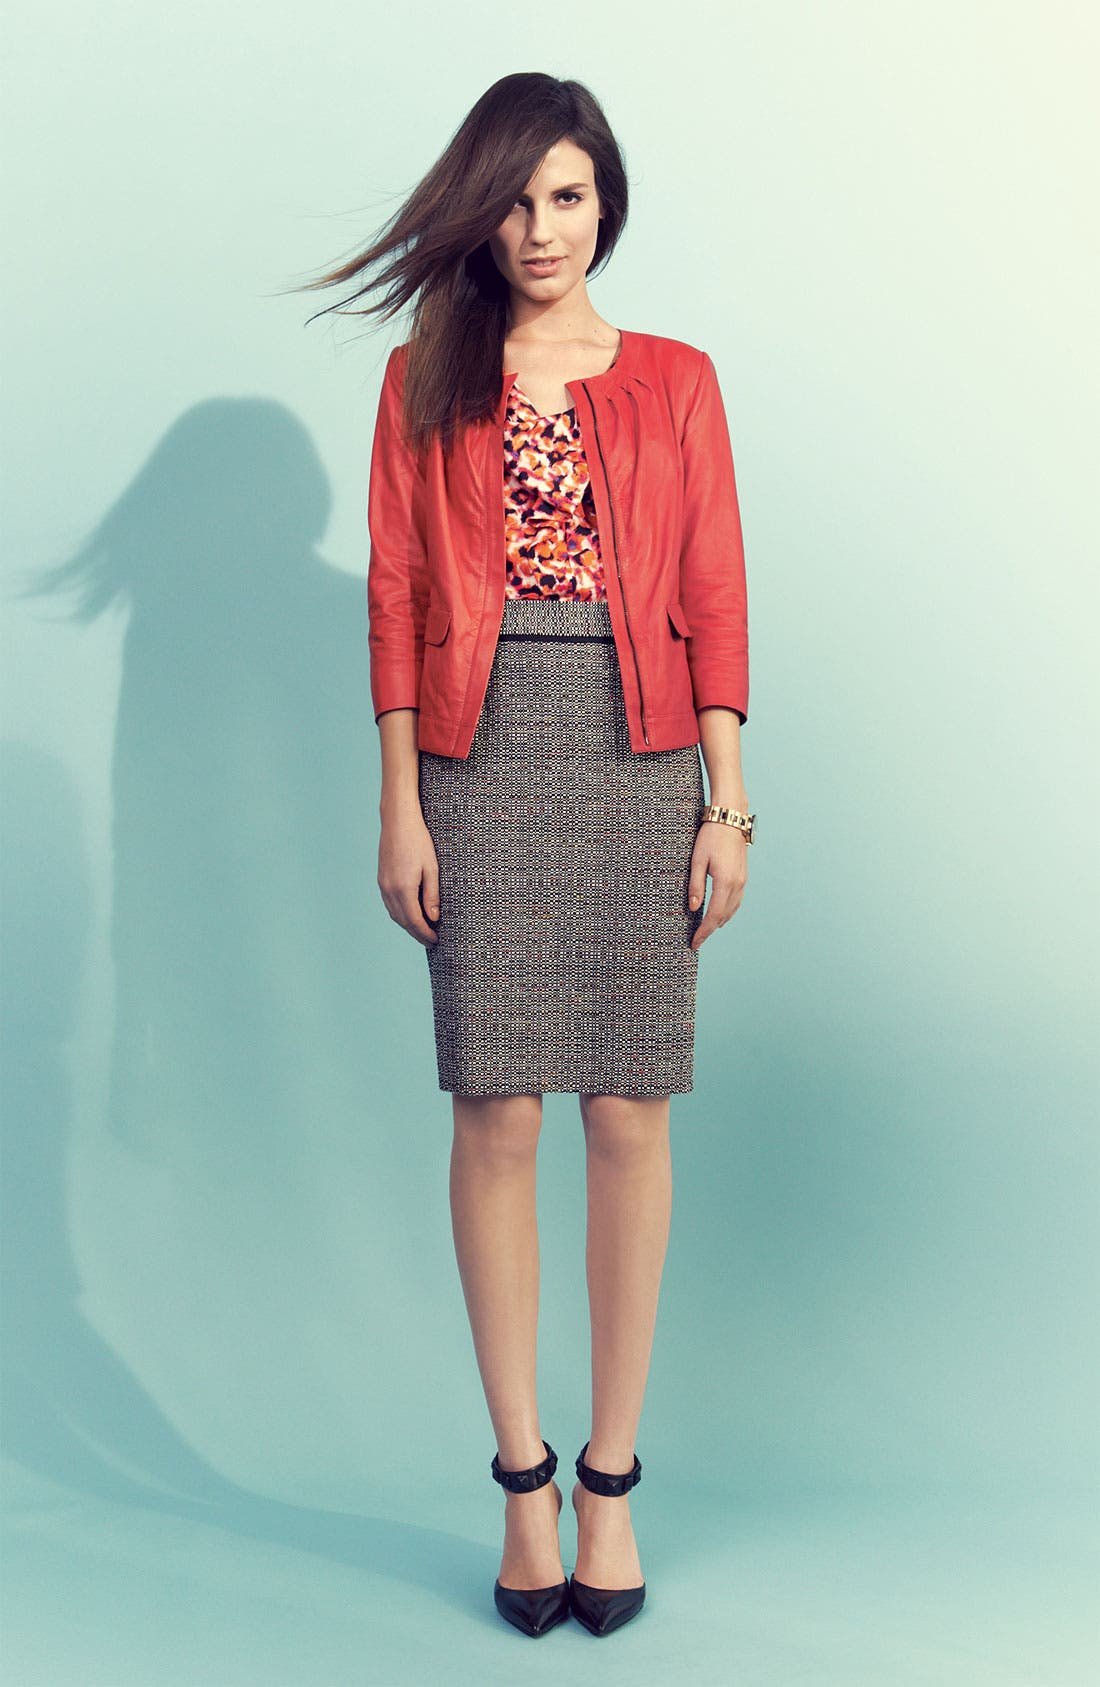 Alternate Image 1 Selected - Classiques Entier Leather Jacket, Silk Top & Tweed Skirt